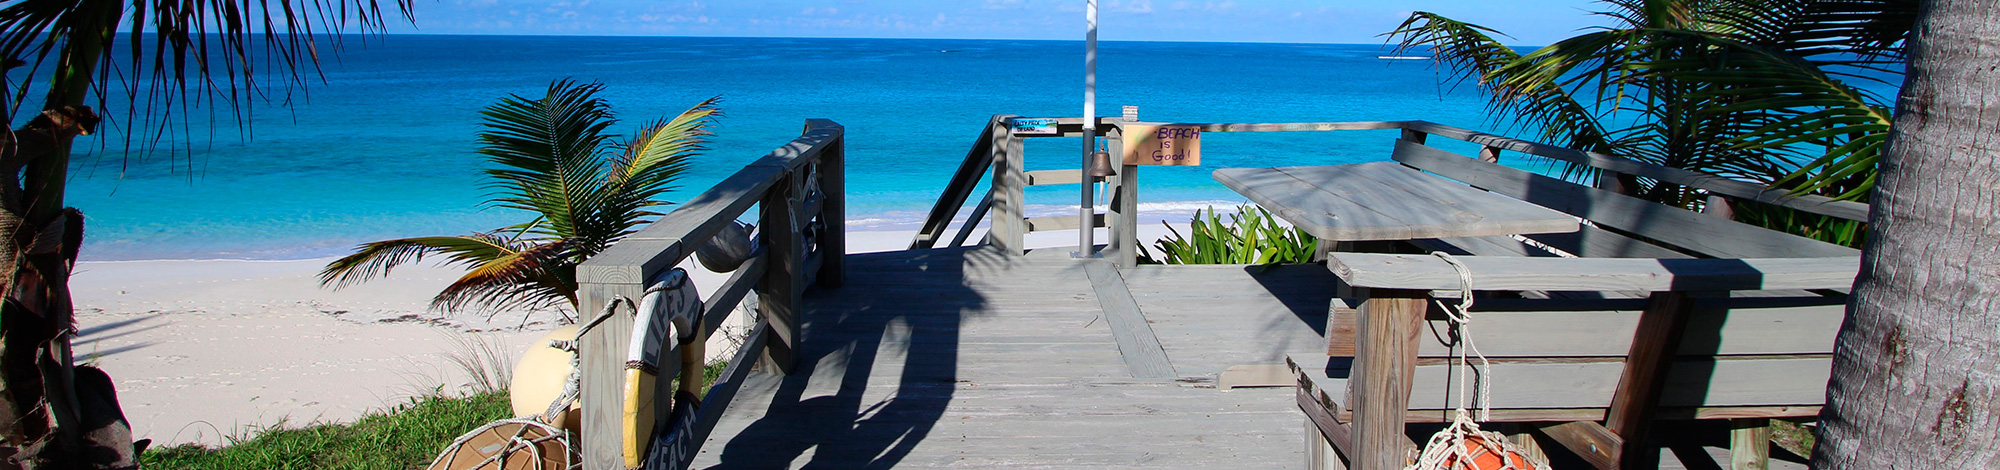 Elephant Beach Vacation Rental in Guana Cay